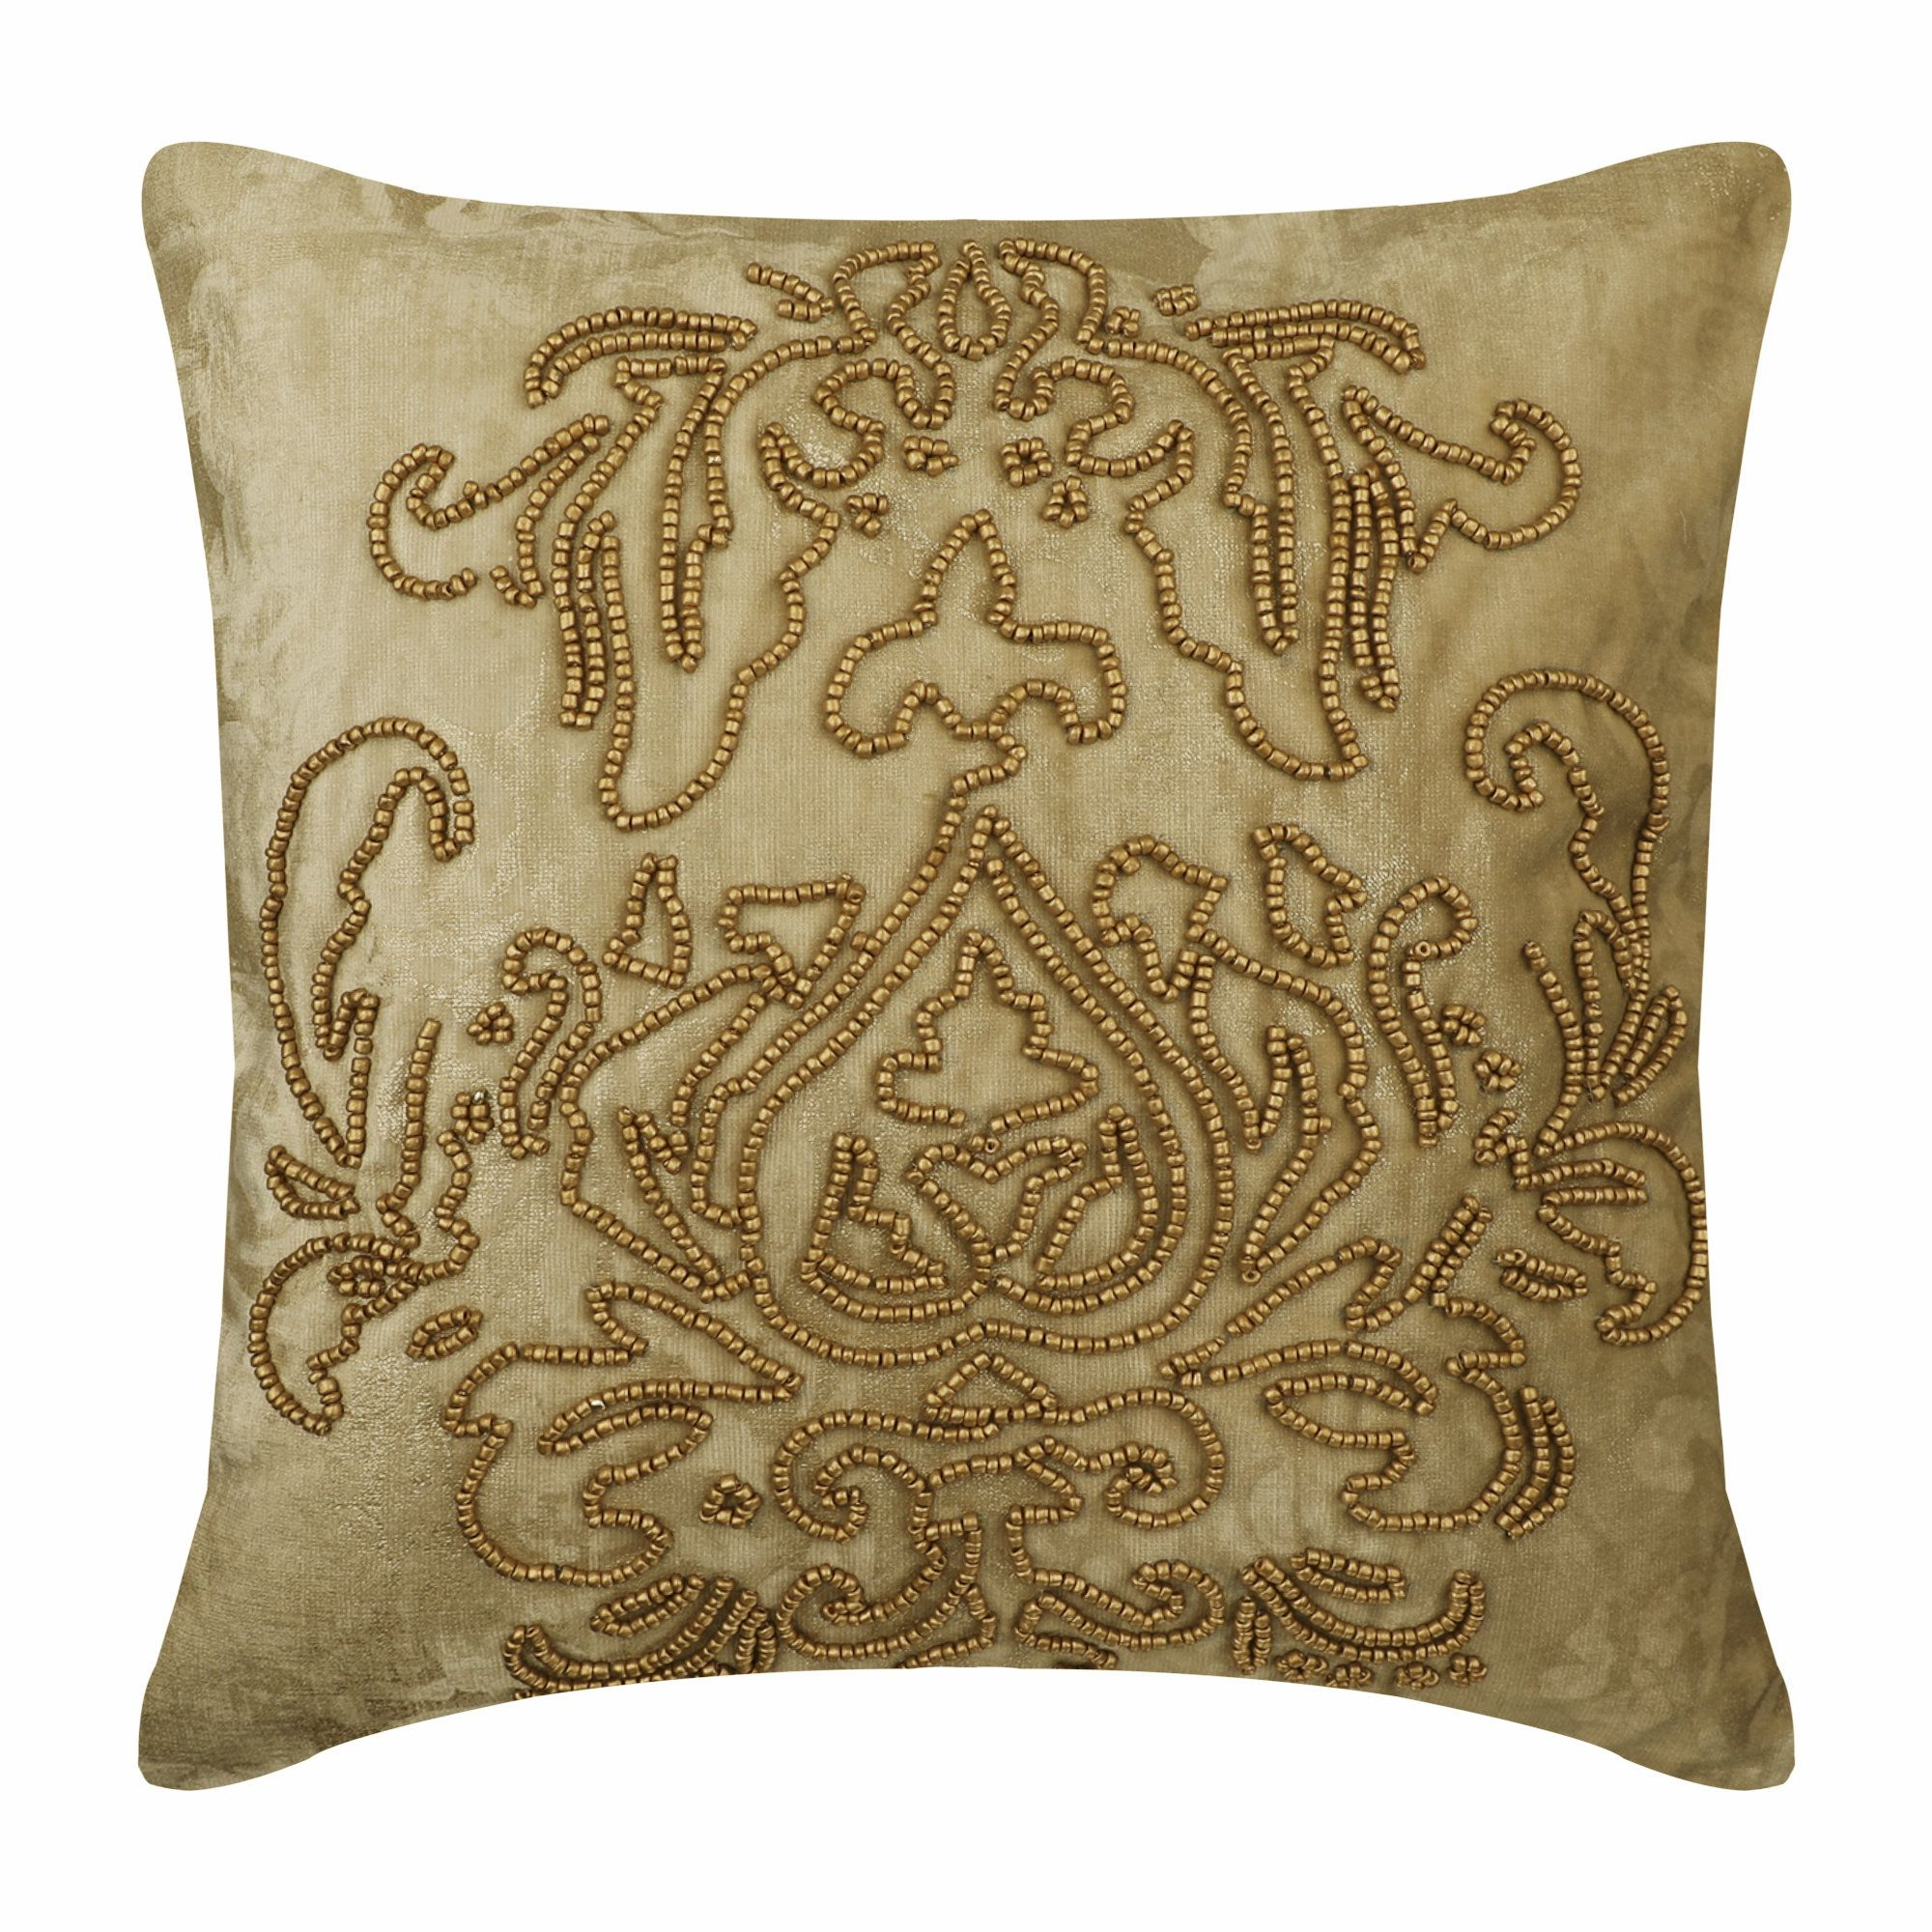 Designer Throw Pillow Cover 16x 16 Velvet Toss Etsy In 2020 Designer Throw Pillows Gold Decorative Pillows Throw Pillows